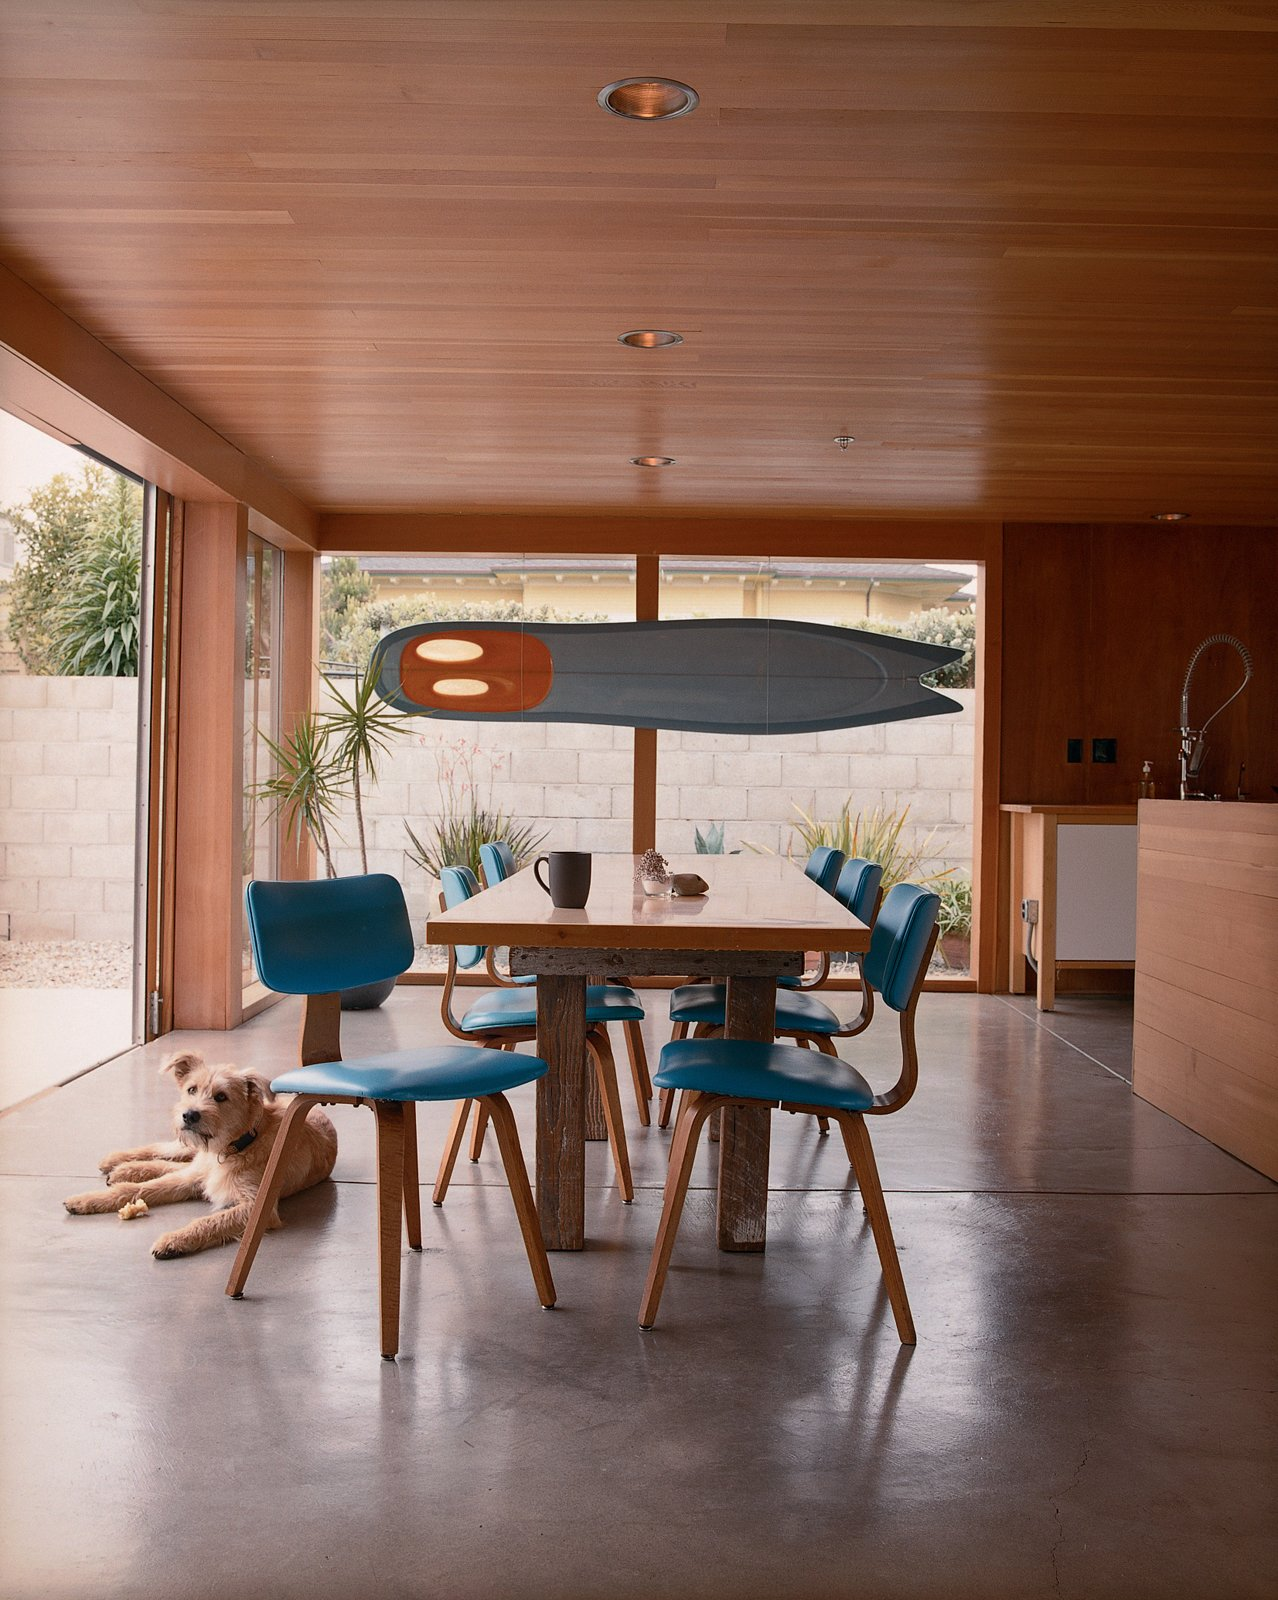 """To inexpensively re-create a classic modern look for a wood-paneled ceiling,   the couple used Douglas fir tongue-and-groove flooring. They also used flooring to cover the expansive kitchen island. """"It was really funny to see the flooring guys up on the island banging away,"""" reports Thomas. The ceiling presented a greater challenge in that regard. www.woodfloorsonline.com  To cut down on costs, the architect specified standard Marvin (new construction) windows throughout. Utilizing the maximum parameters of Marvin's predetermined sizes, Thomas and Mary Kate were able to achieve the modern open look they desired, but for a fraction of the cost. They also replaced all of the windows' vinyl interior frames with wood that complements the home's pared-down aesthetic. www.marvin.com  Dogs Who Love Modern Design by Brian Karo from A Look At Dining Rooms"""